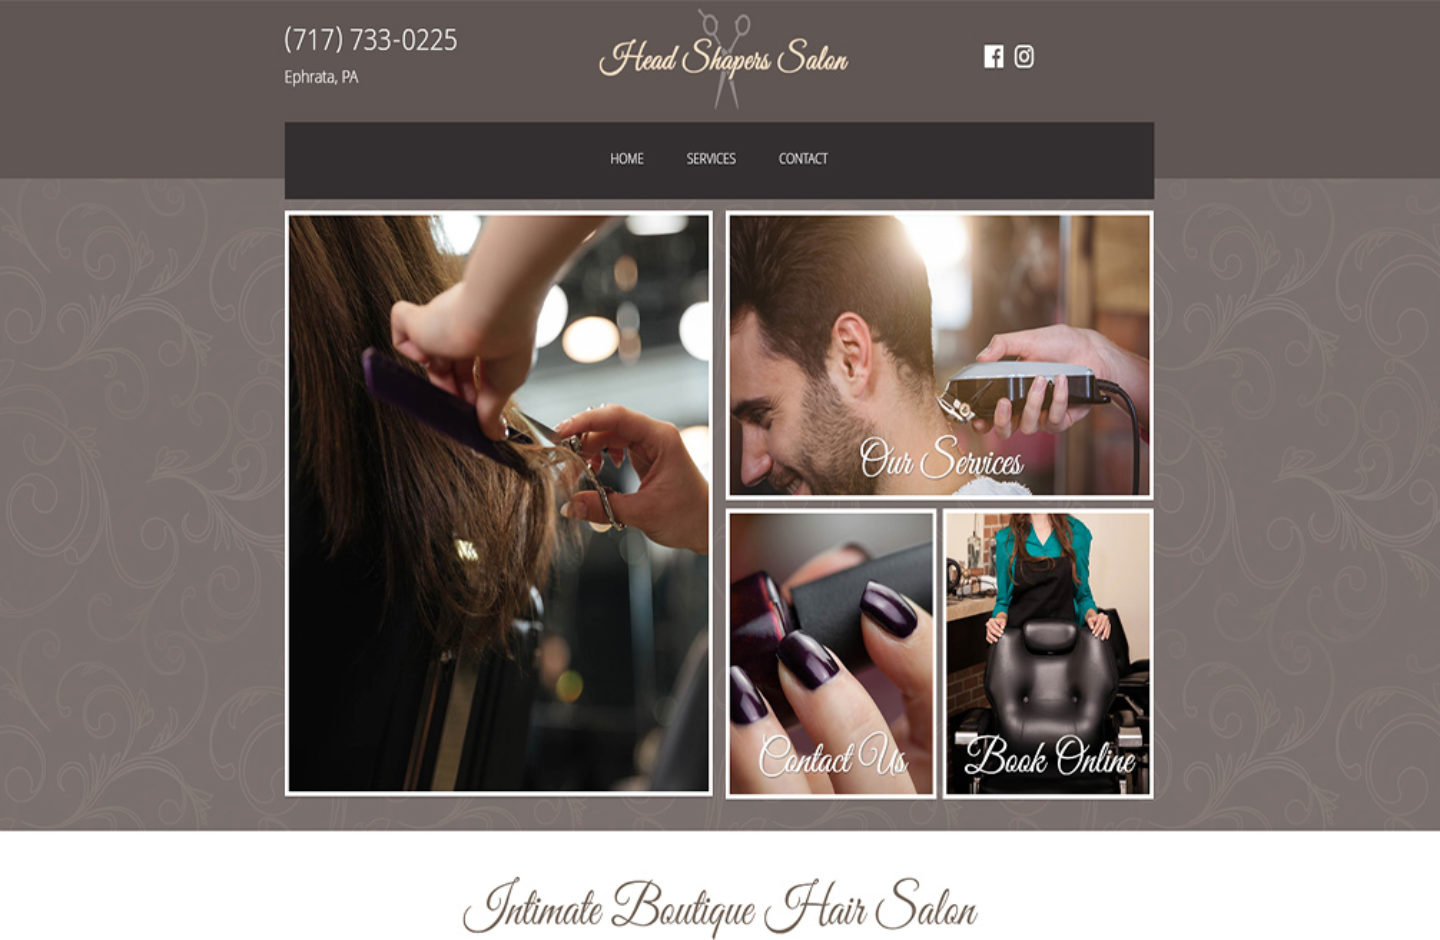 Head Shapers Salon